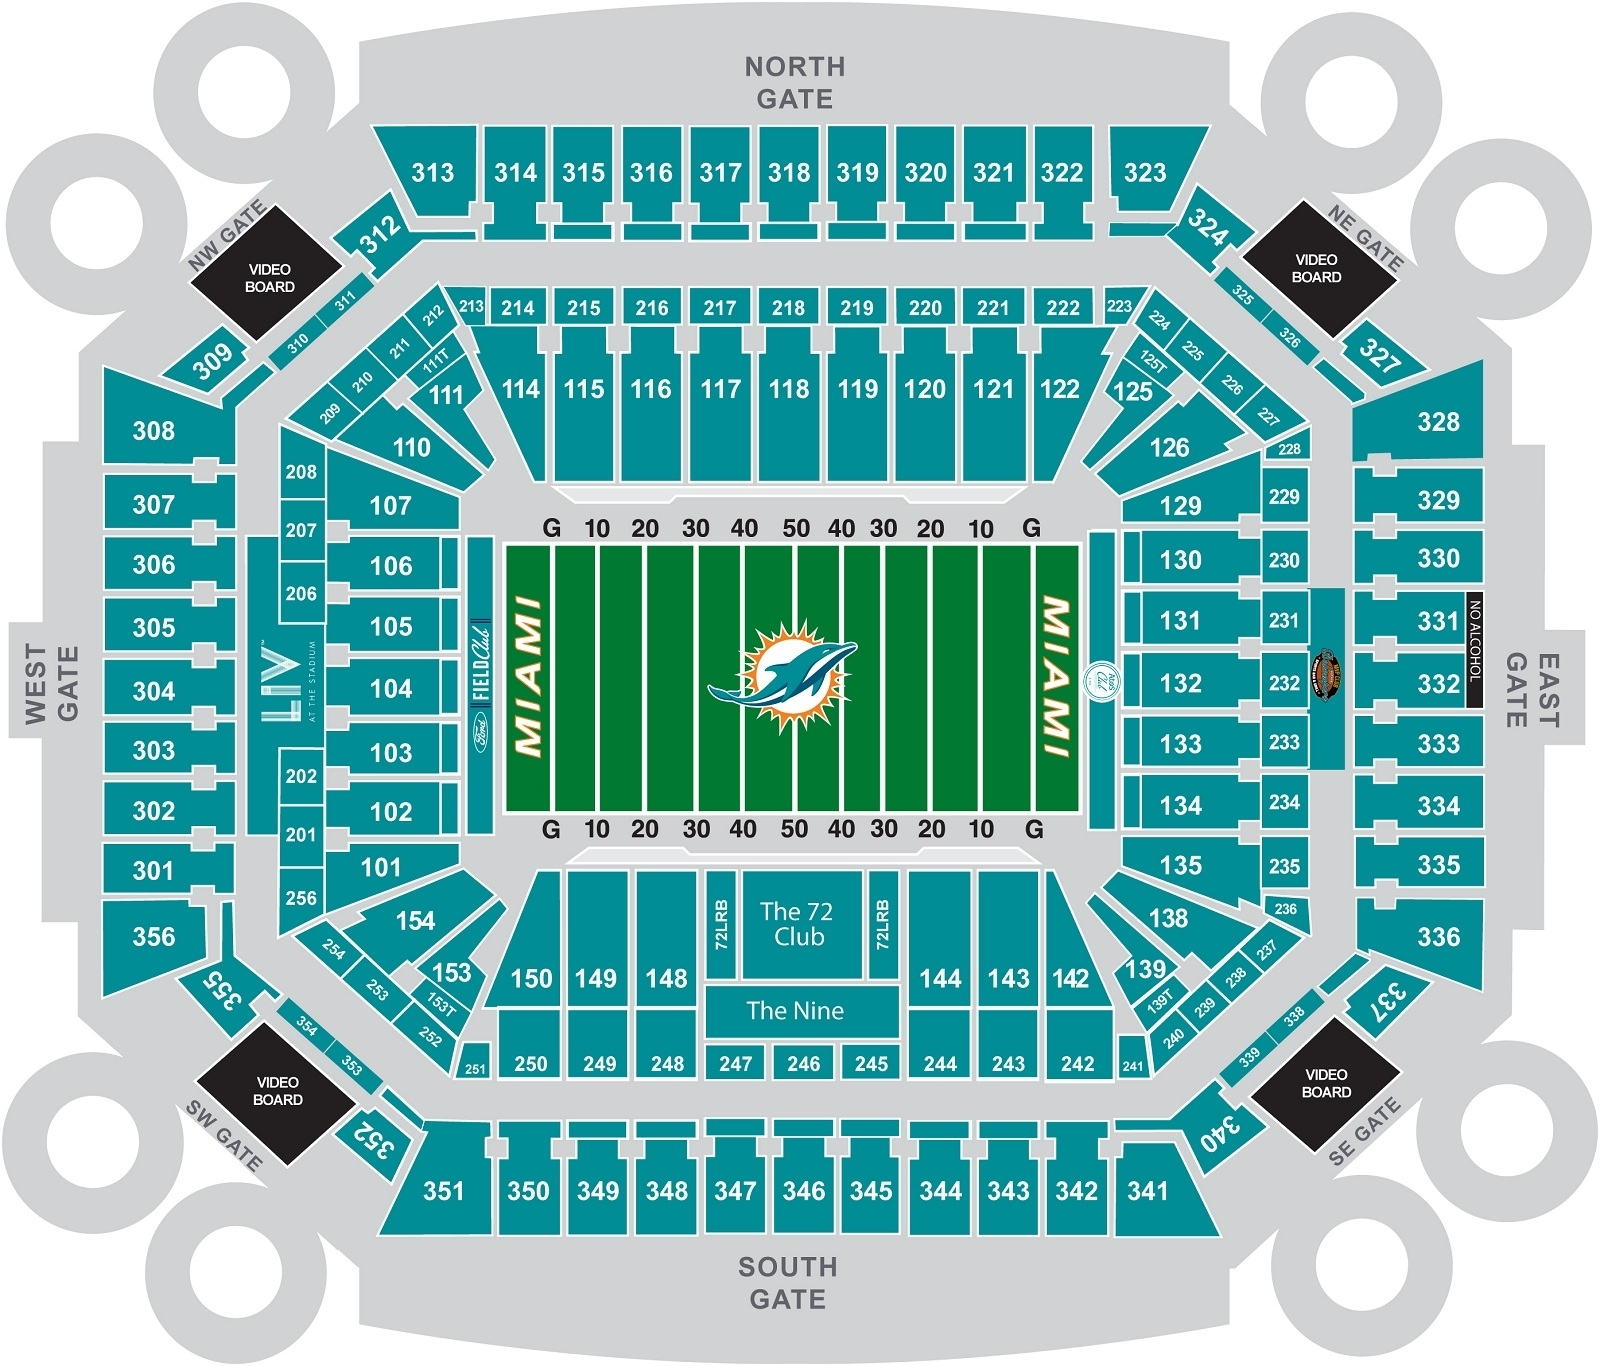 2020 Super Bowl Seating Chart | February 2, 2020 | Fan intended for Super Bowl 2019 Stadium Seating Capacity